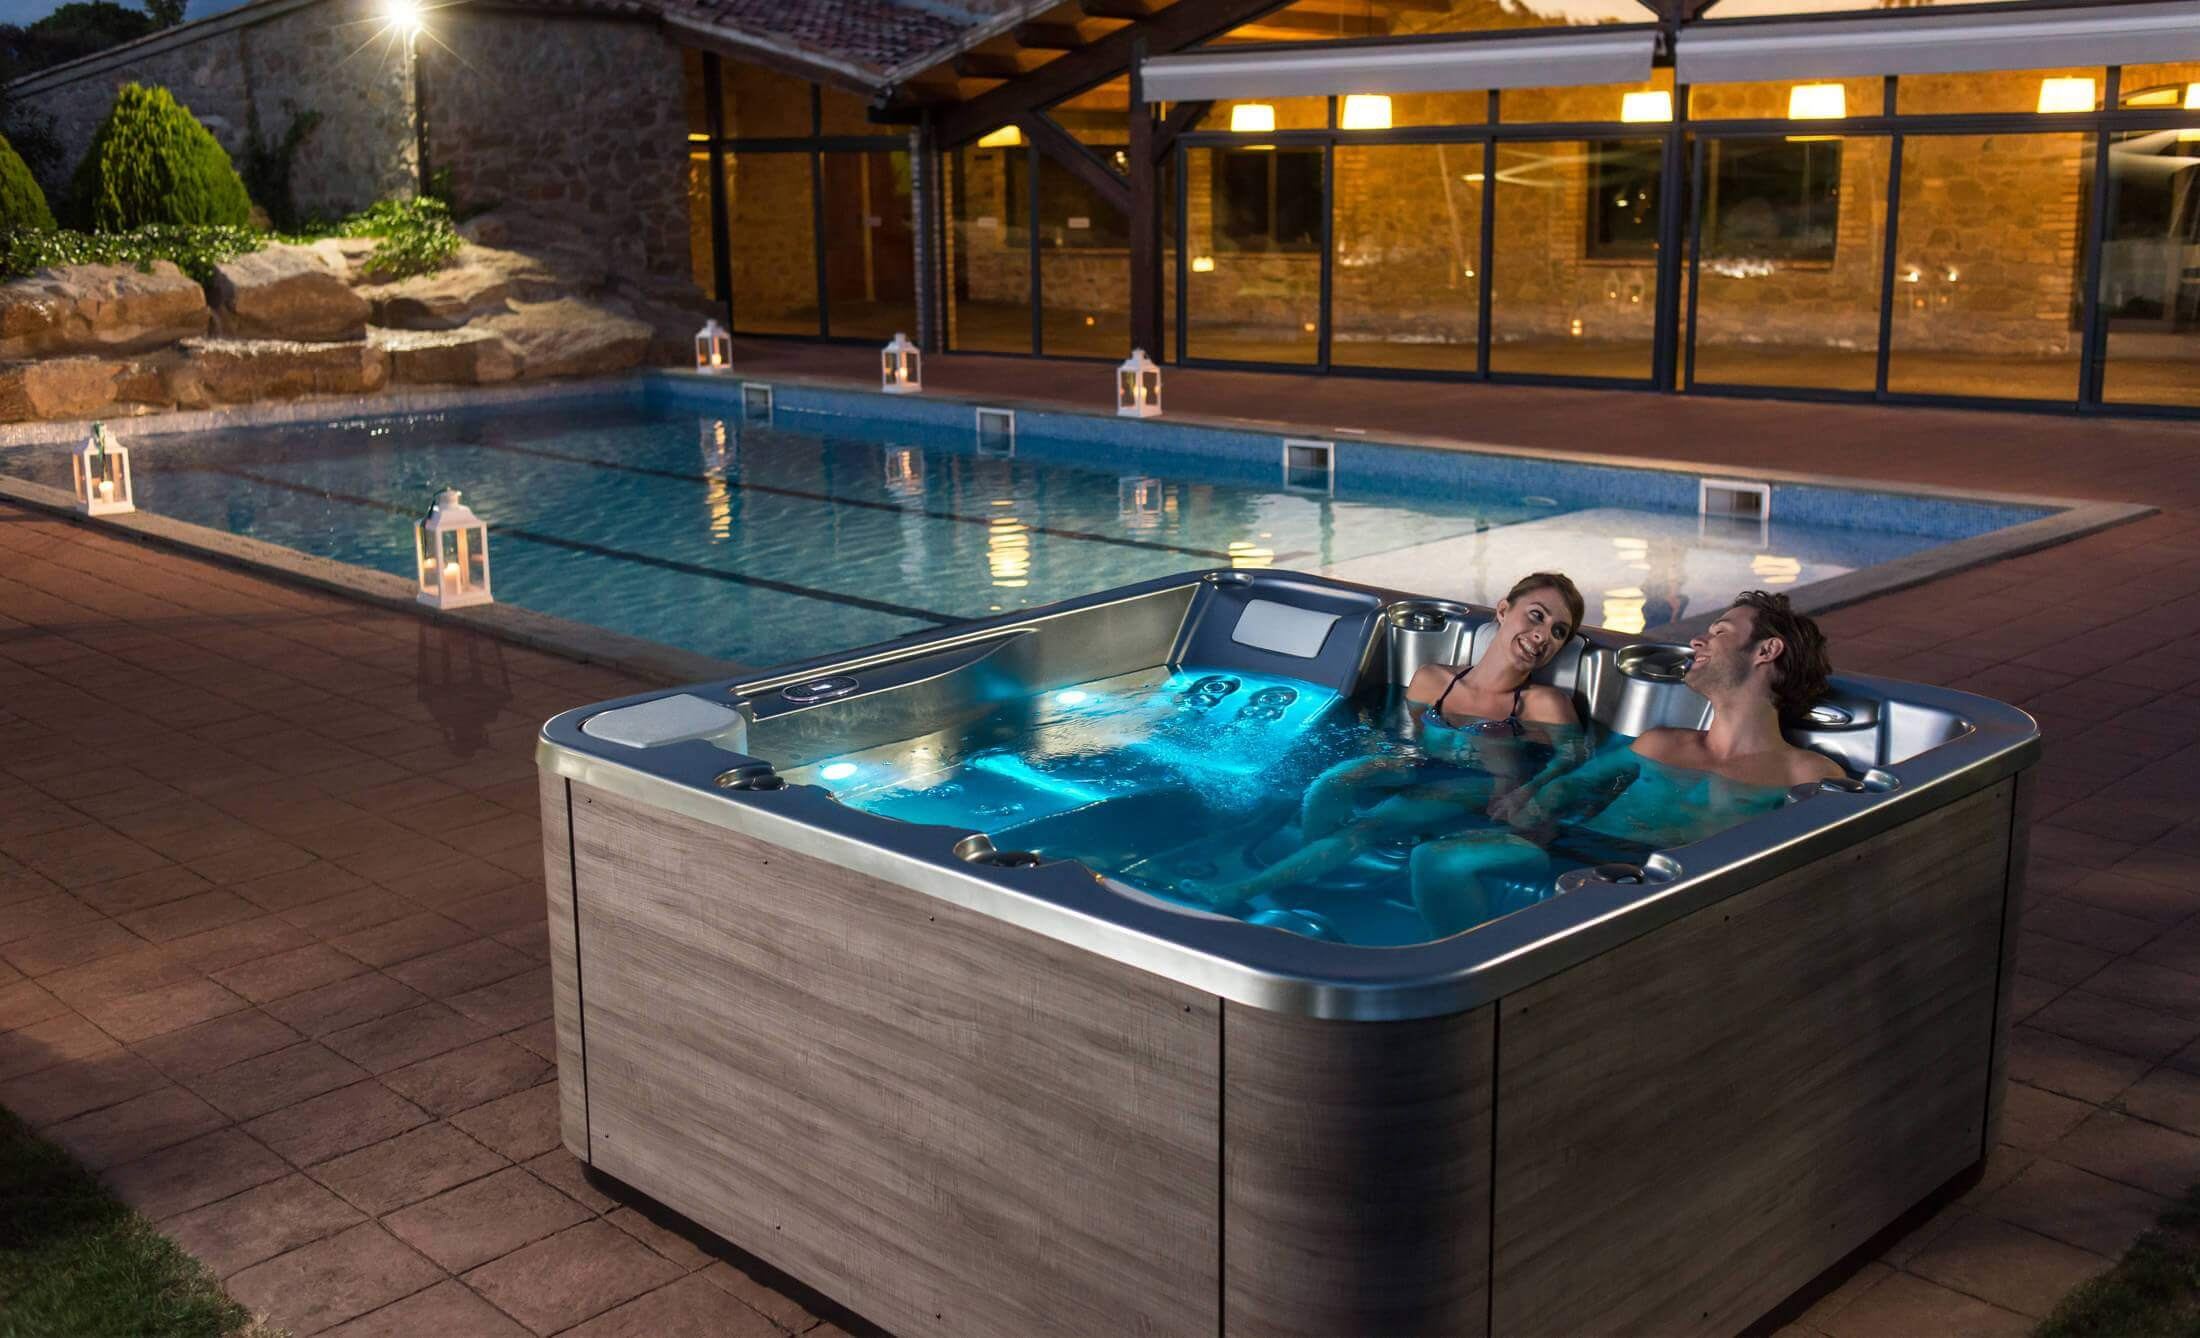 Buy Hot Tub >> Buy Hot Tubs And Hydromassage Tubs Hot Tub Manufacturer